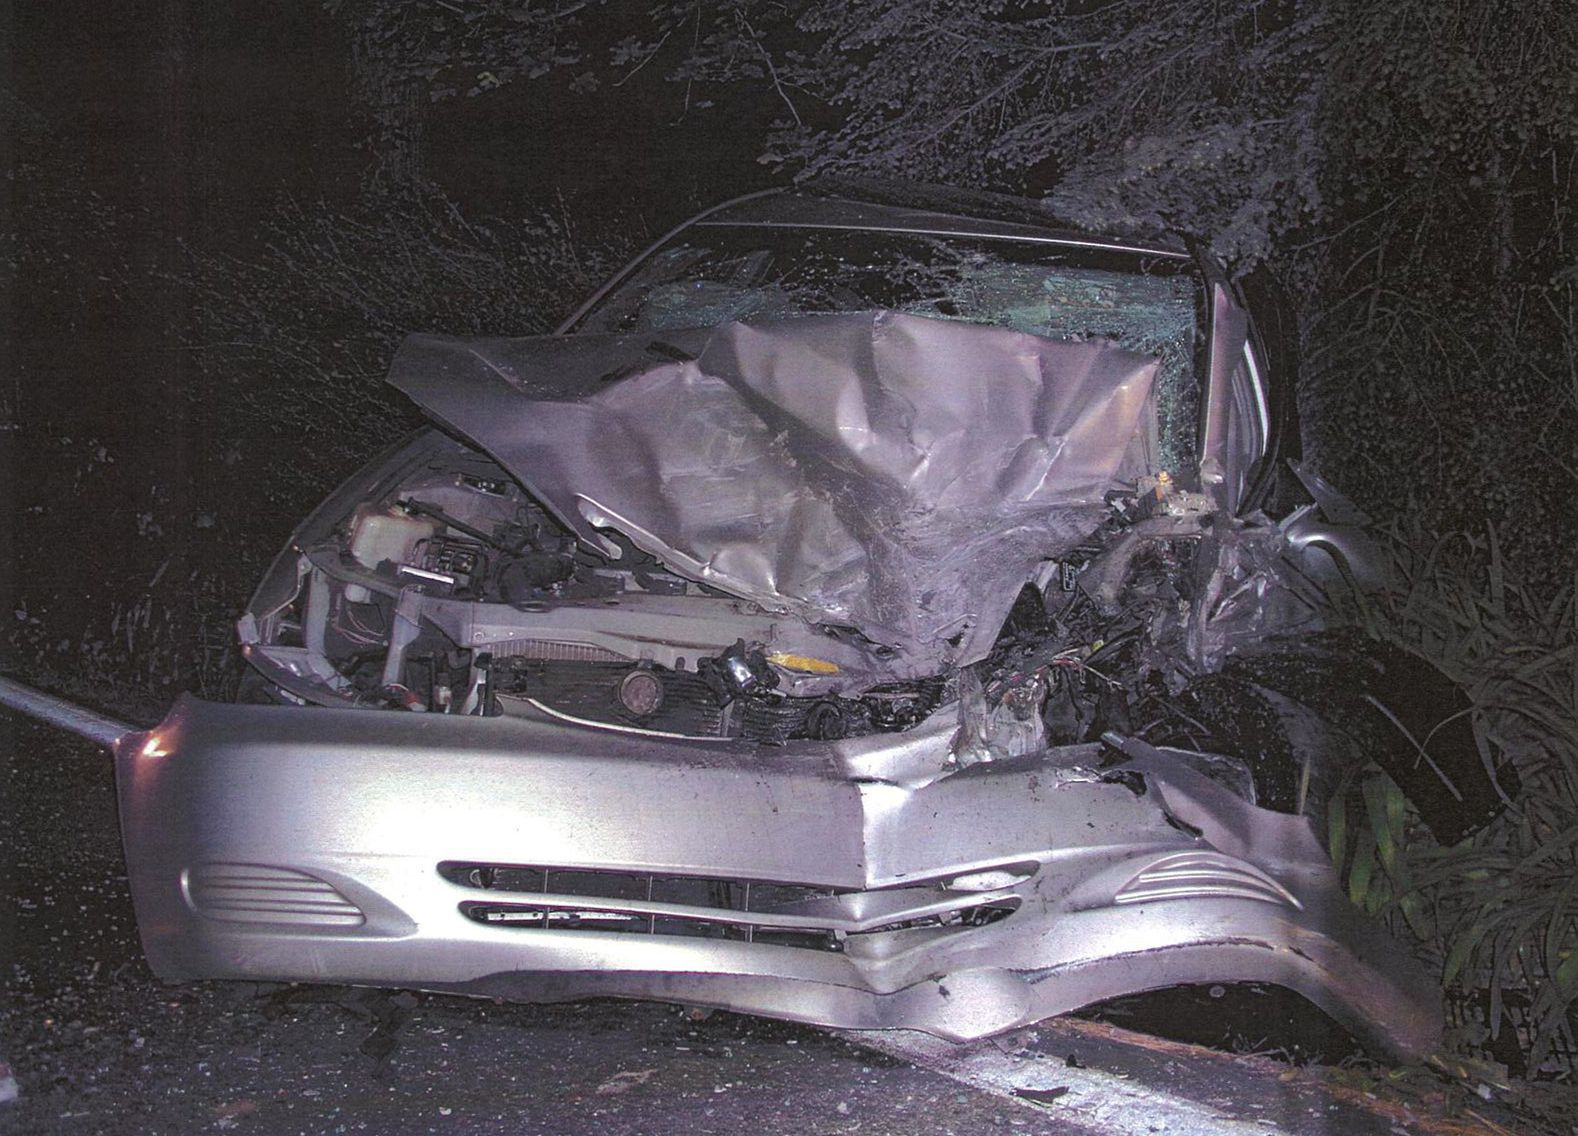 Pa and NJ Car accident lawyers